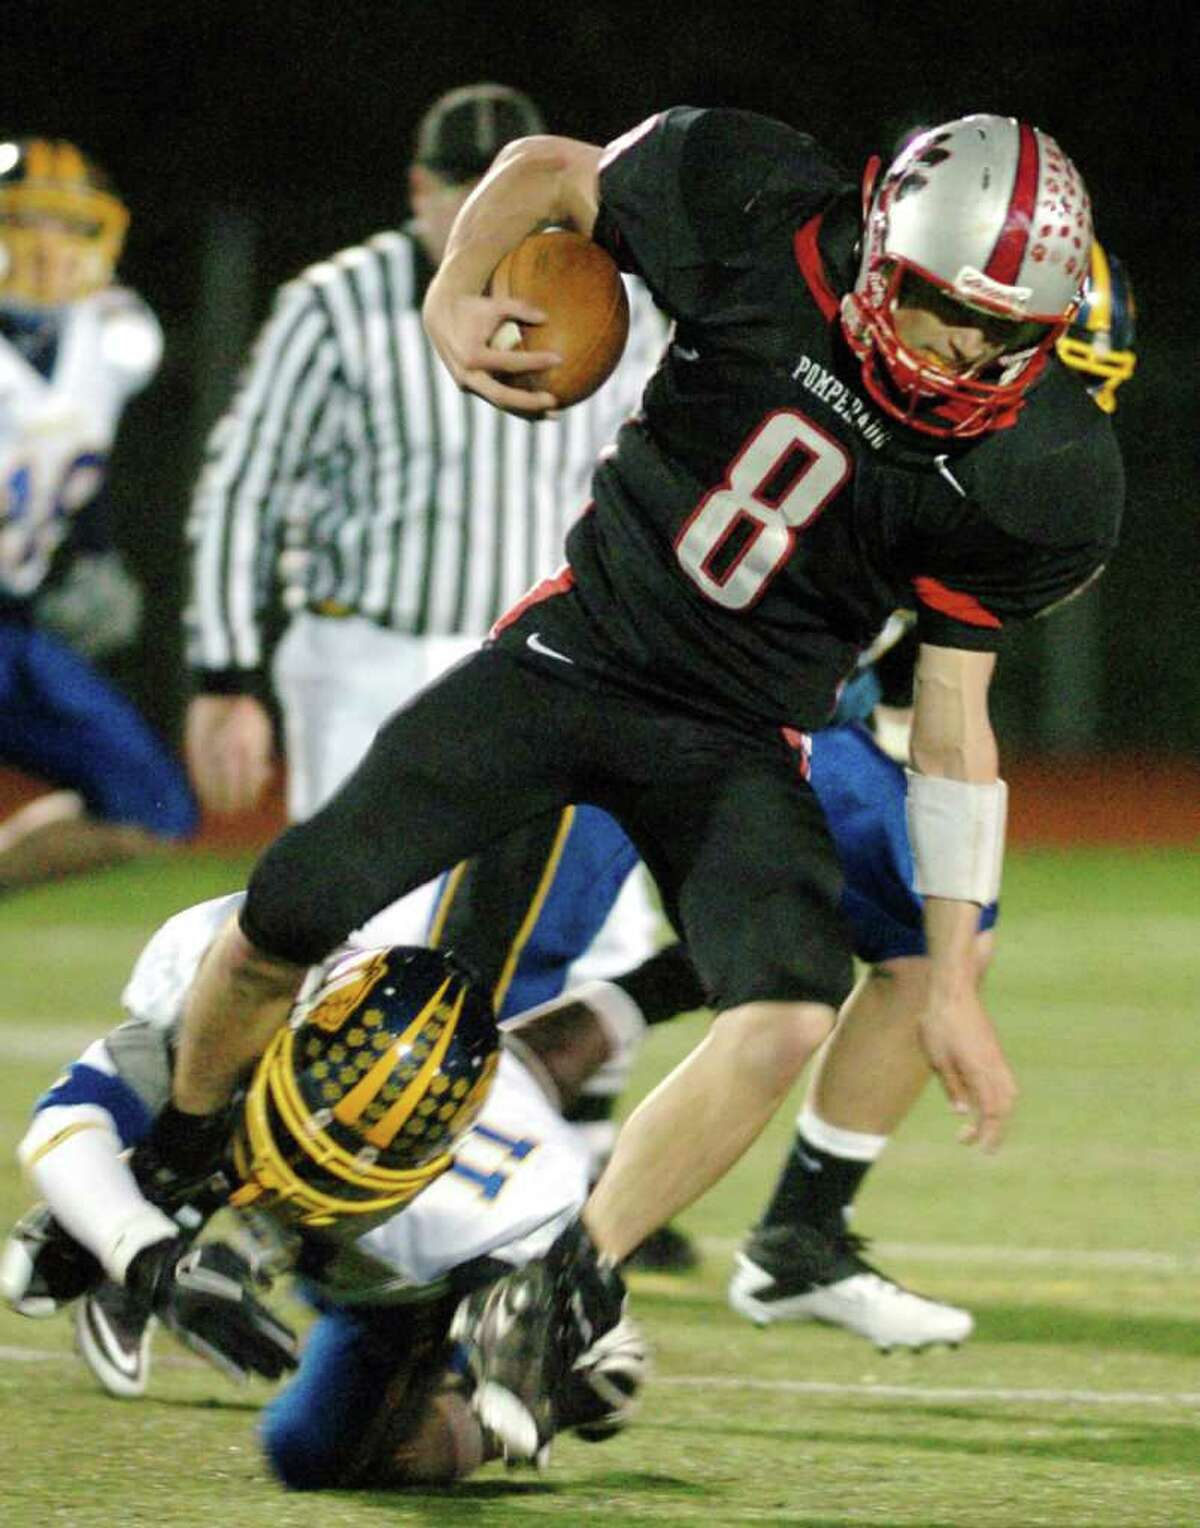 Pomperaug's 8, Andrew Reel, is tackled by Brookfield's 11, Alphonso Gordon, during the football game at Southbury High School Nov. 5, 2010.